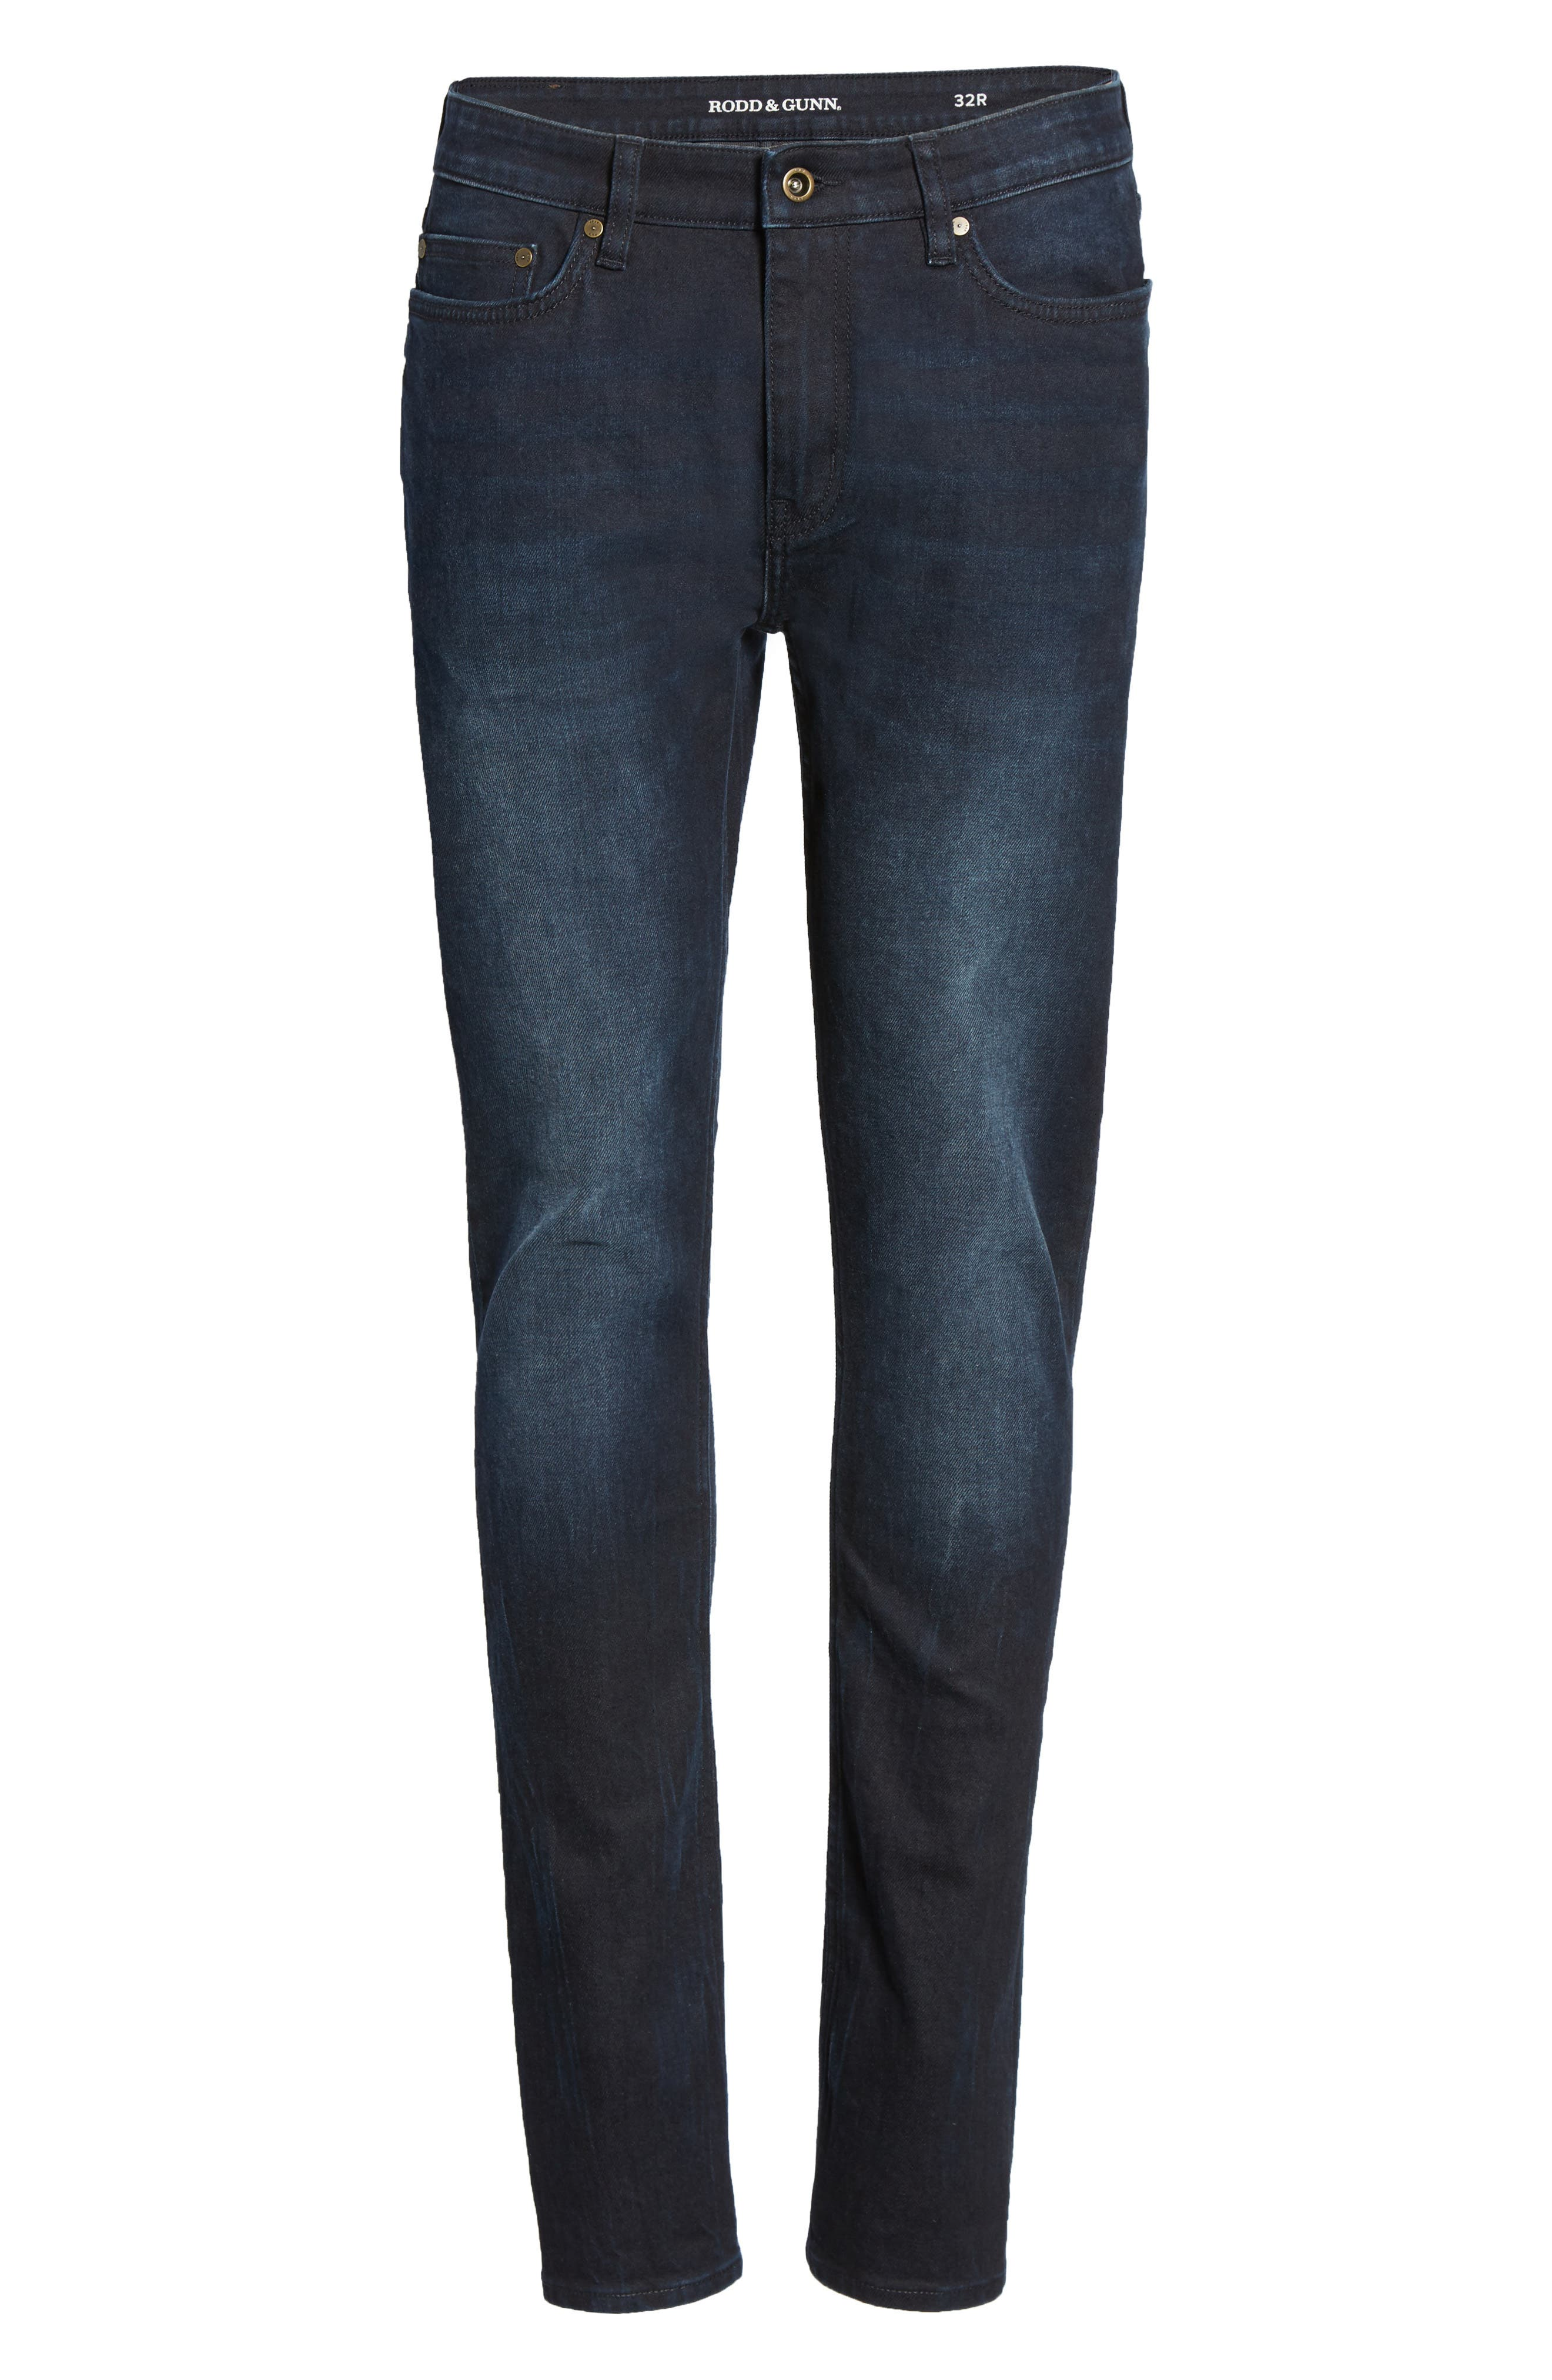 Mapleton Slim Fit Jeans,                             Alternate thumbnail 6, color,                             Denim